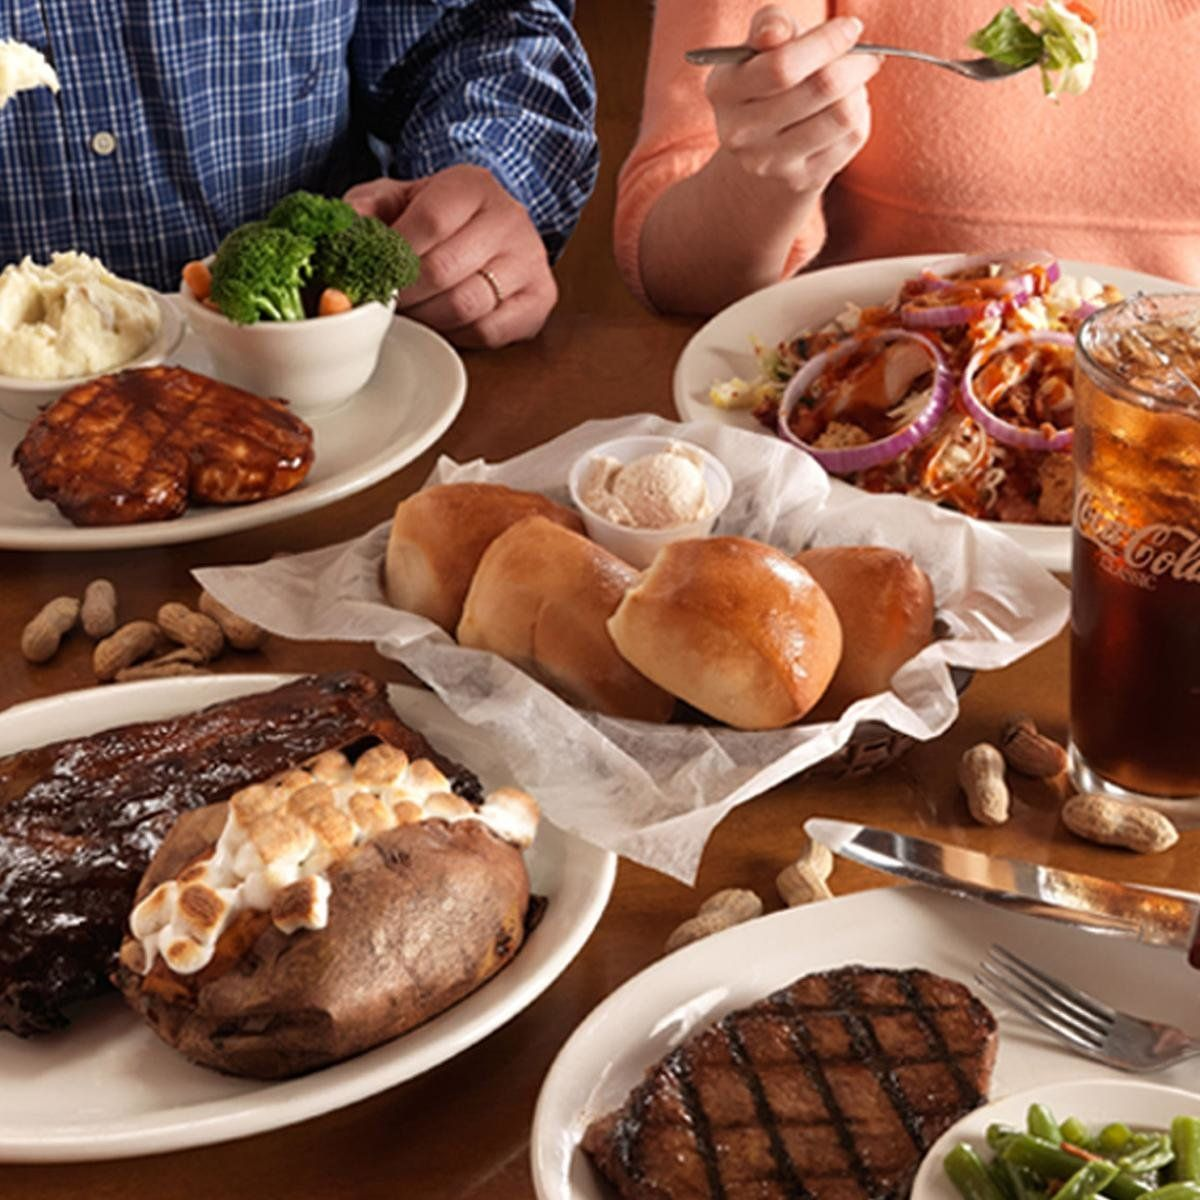 Texas Roadhouse Family Packs from $19.99!  http://dealsplus.com/Grocery_deals/p_texas-roadhouse-family-pack-4-burgers-sides-salad…